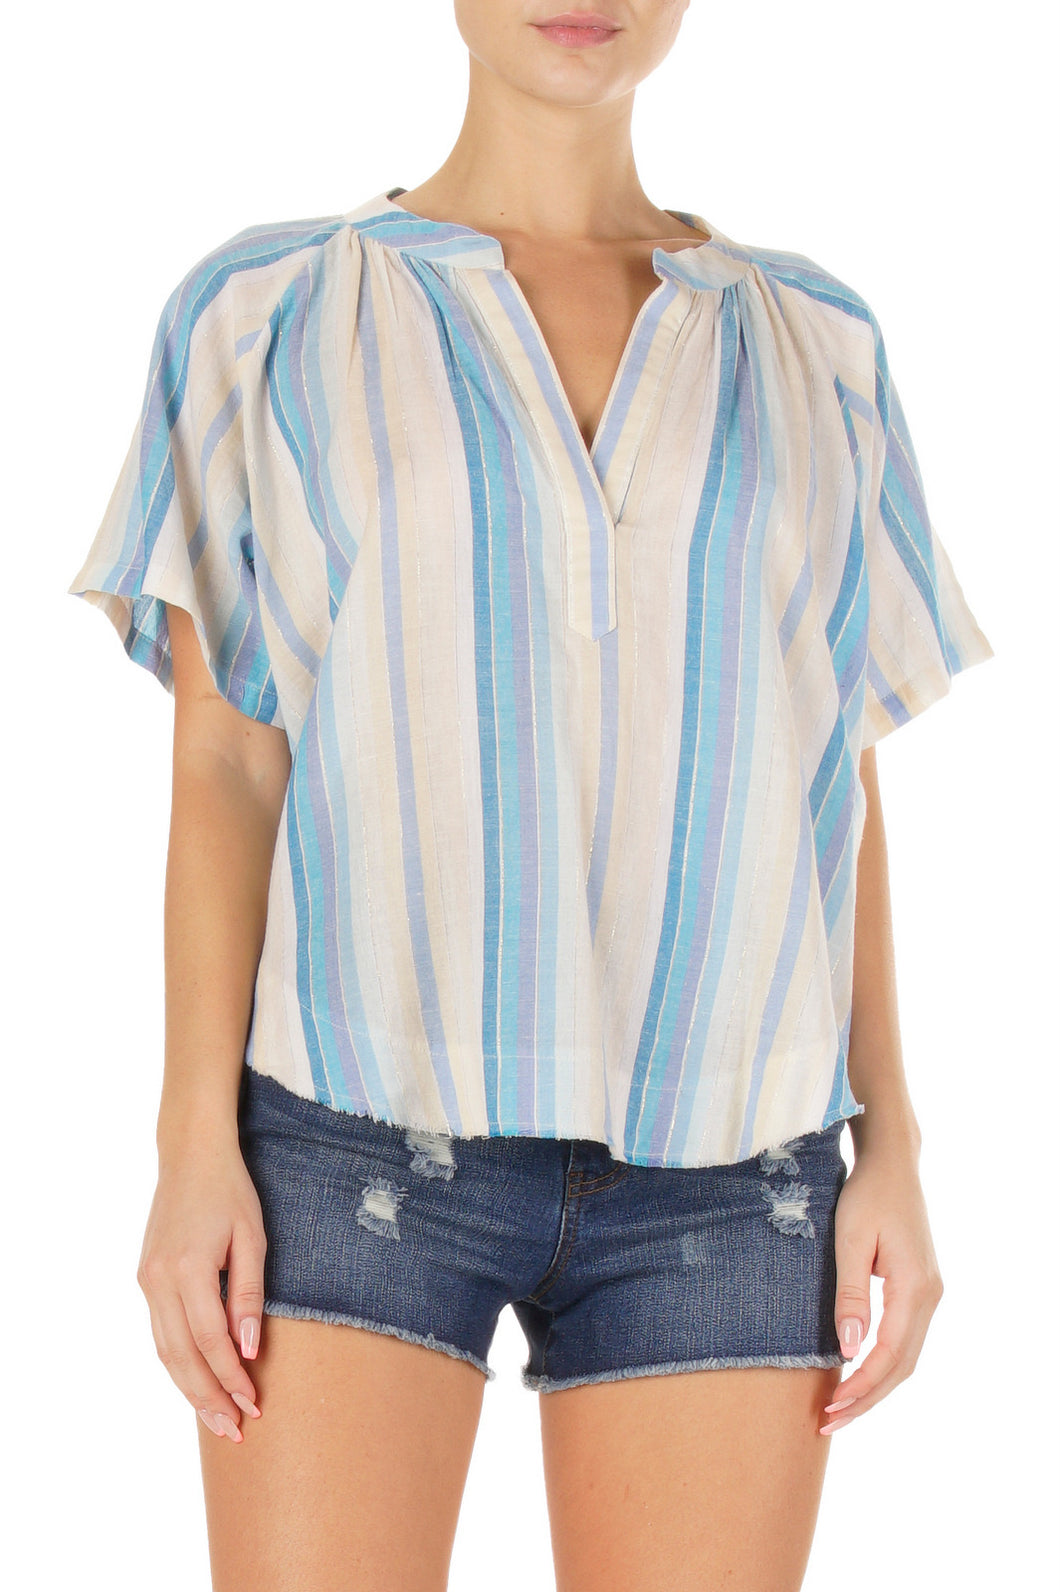 Elan Relaxed Beach Top